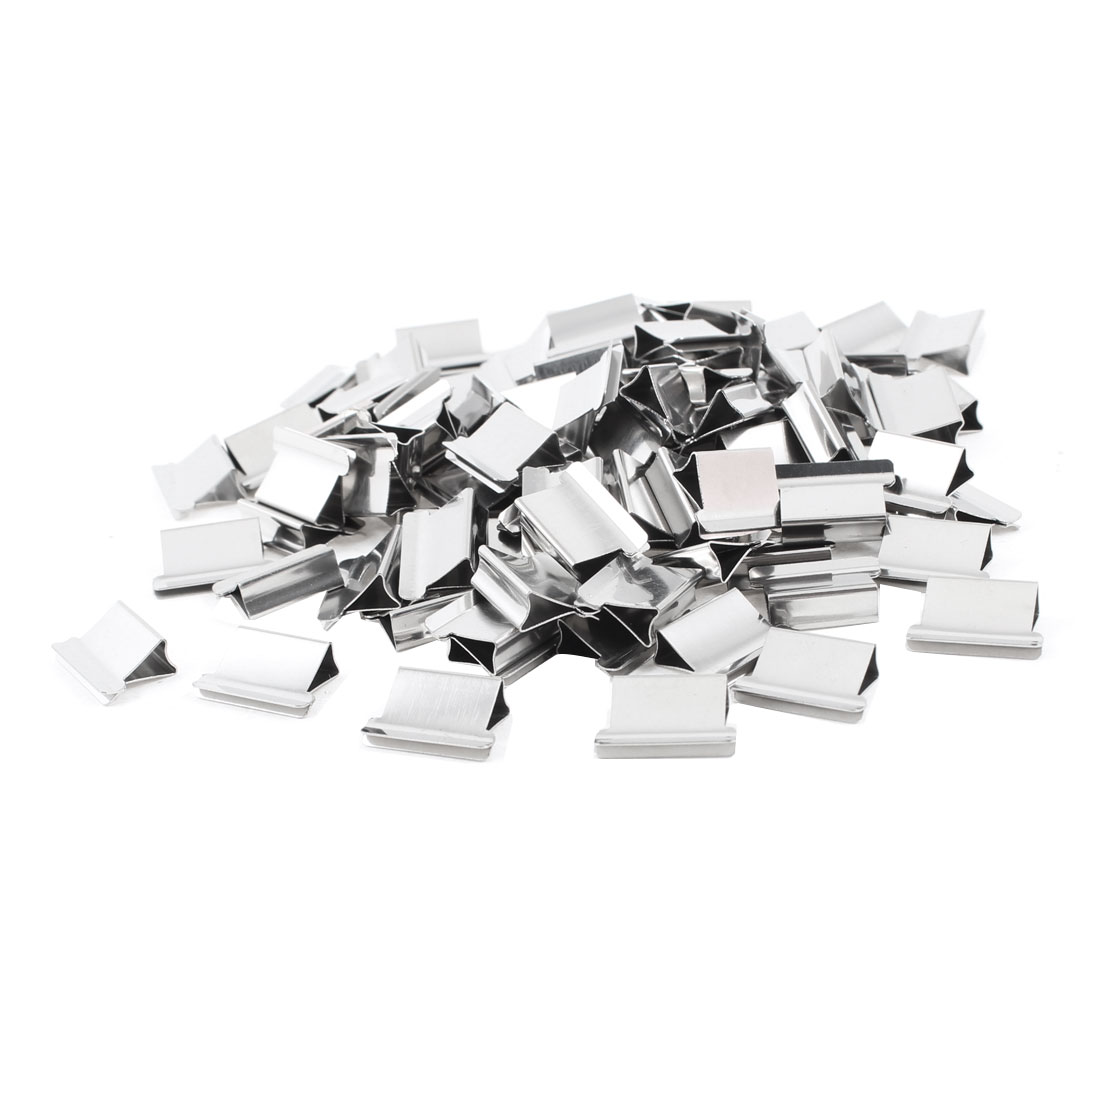 Office Stationery Clam Clips Dispenser Metal Reusable Refill Silver Tone 100pcs